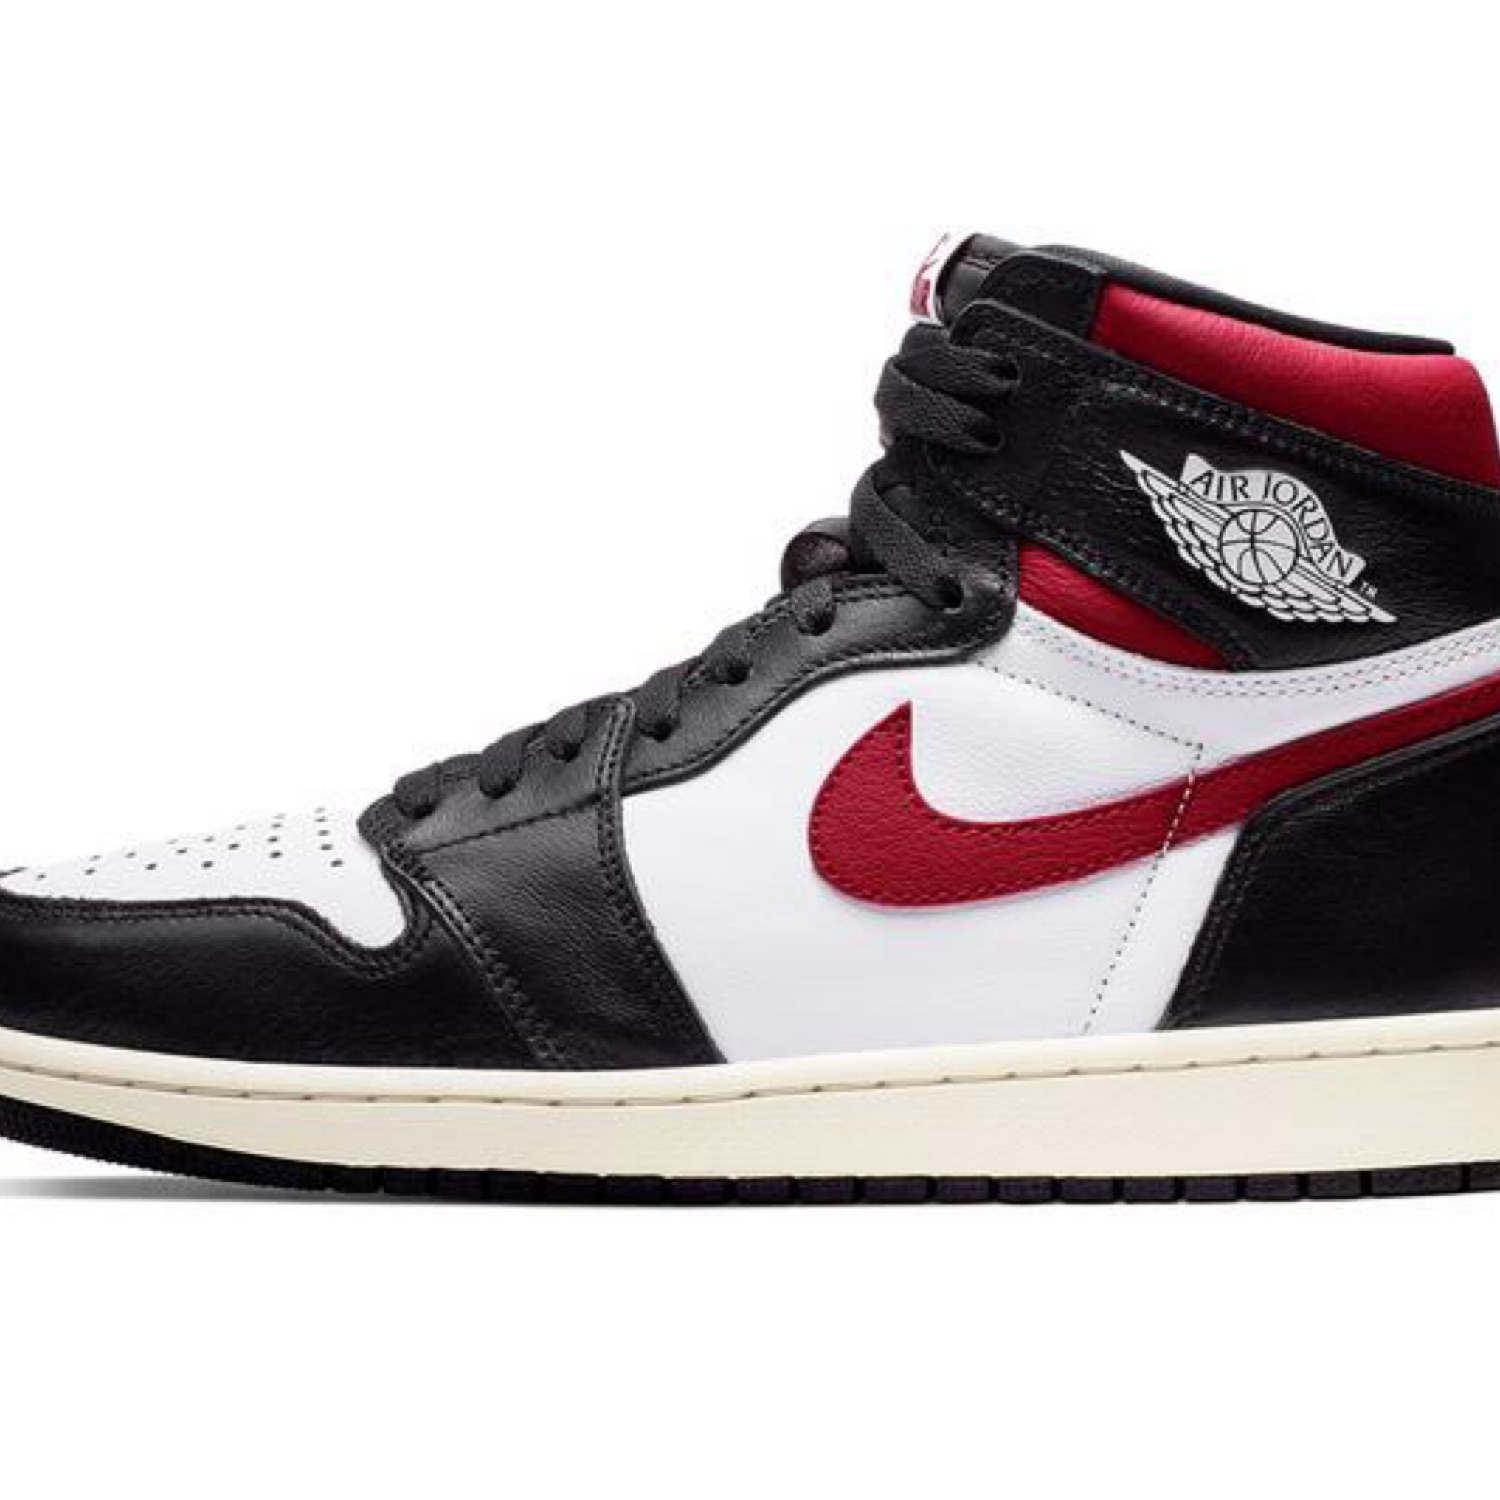 Air Jordan 1 Gym Red In Hand Size 9